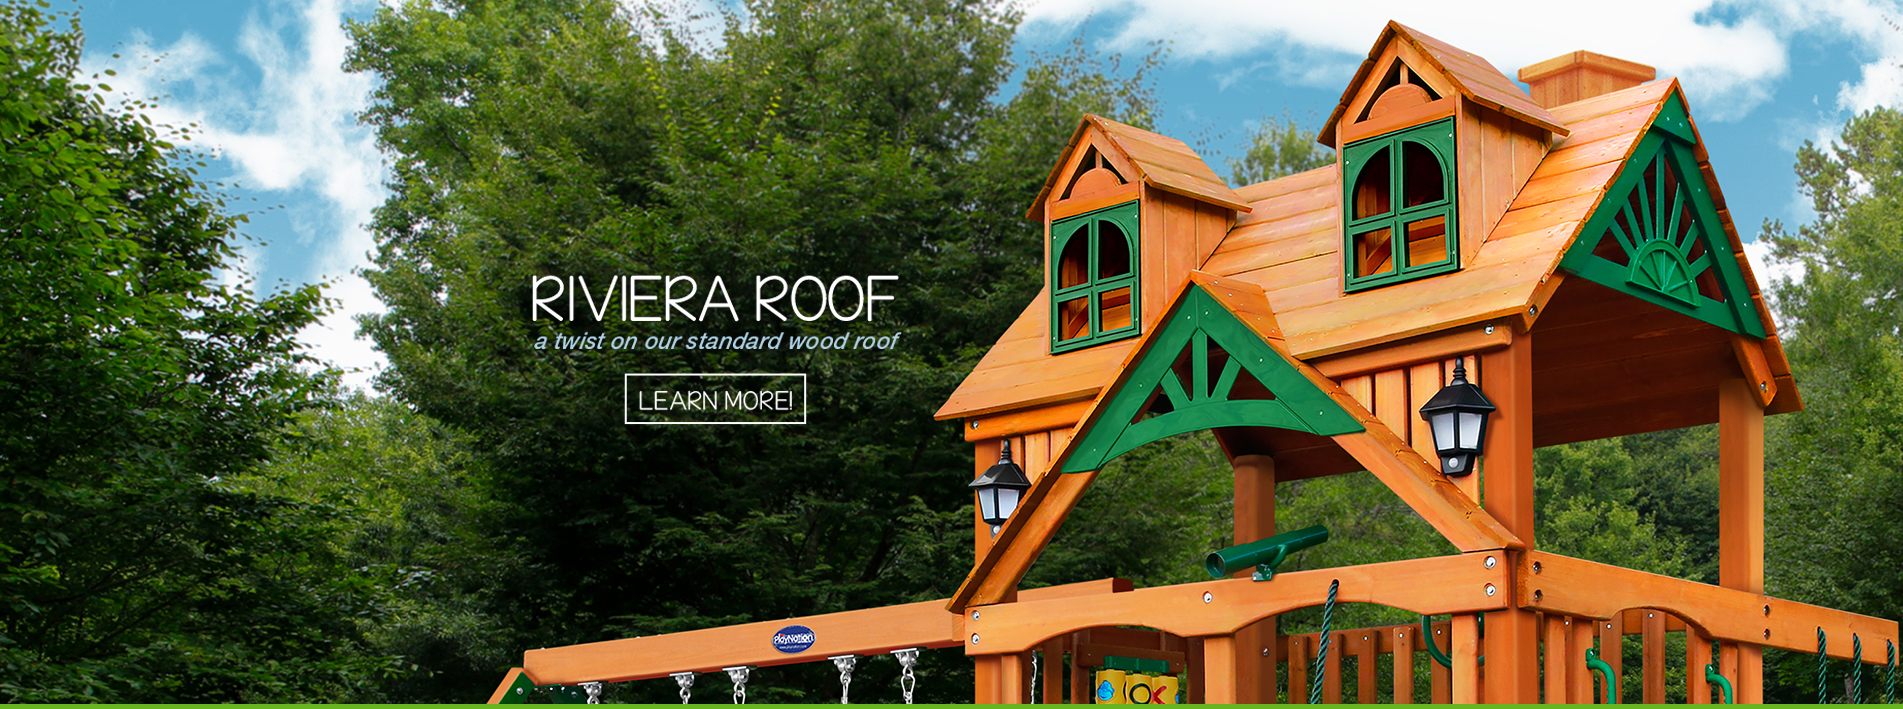 Learn more about our Riviera roof here!